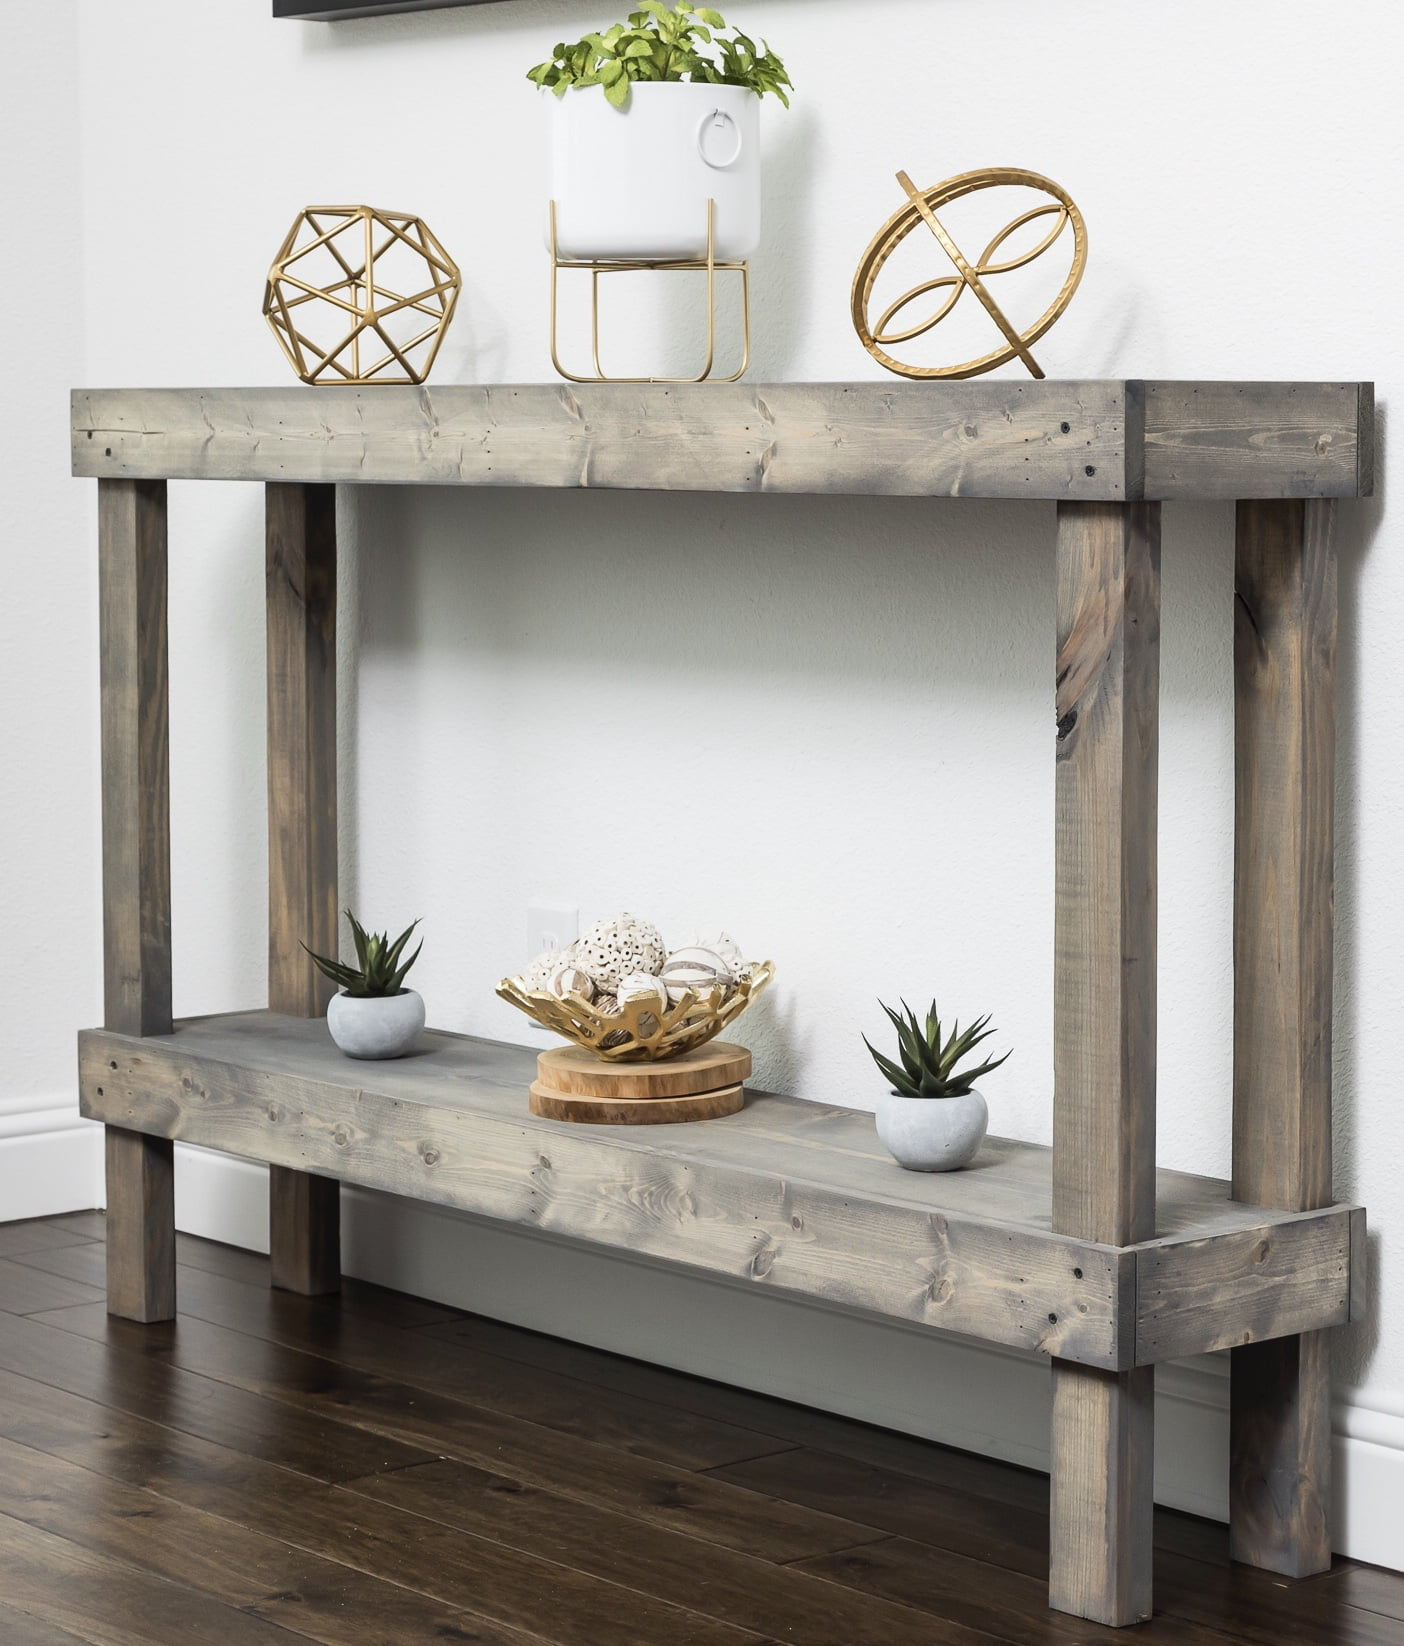 Marvelous Rustic Luxe Large Wooden Sofa Table By Del Hutson Designs Ibusinesslaw Wood Chair Design Ideas Ibusinesslaworg